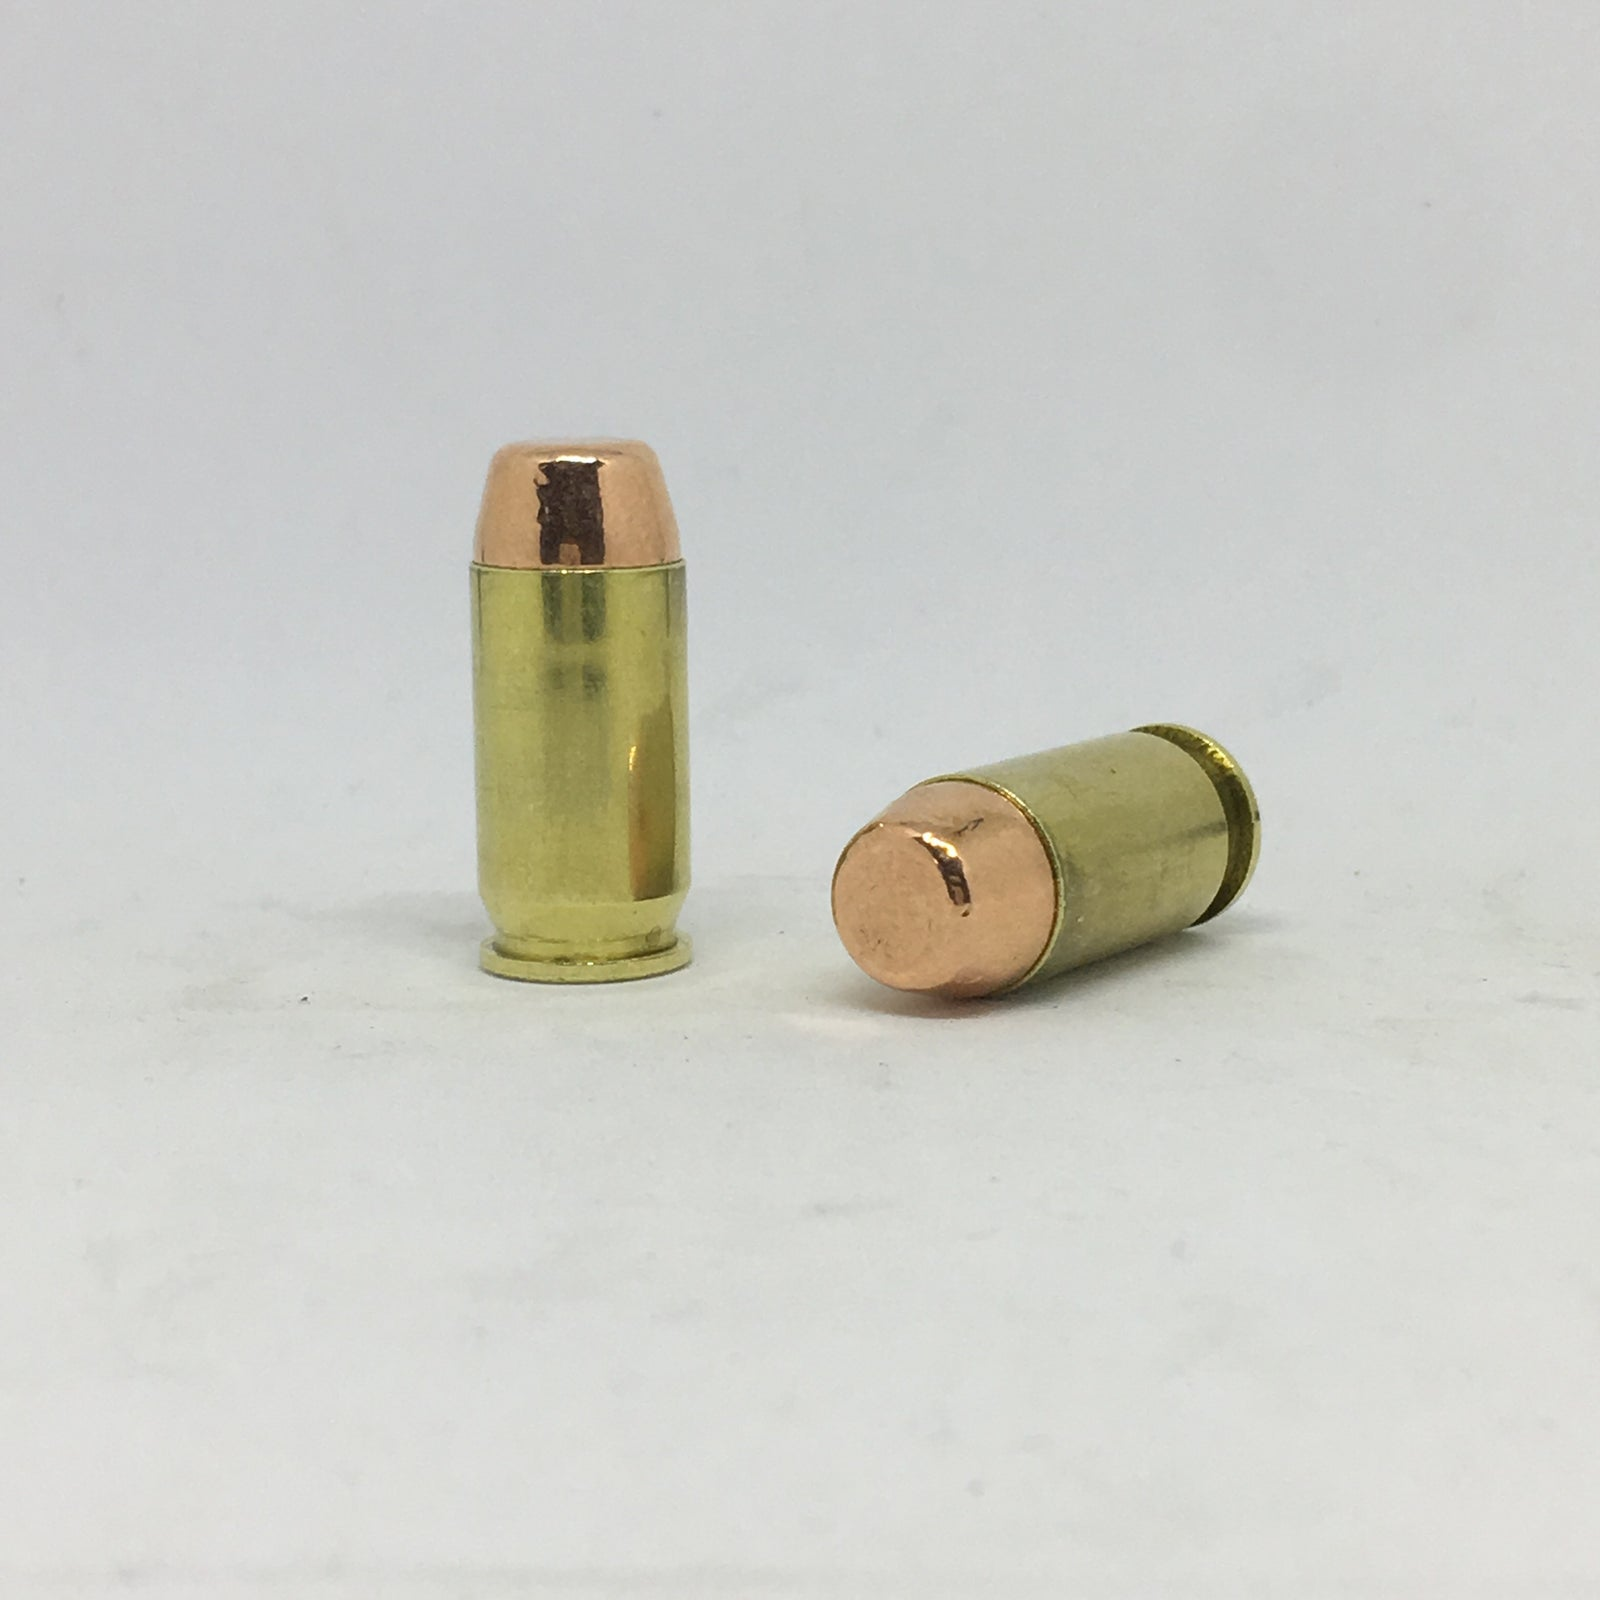 45 ACP Target/Training Rounds